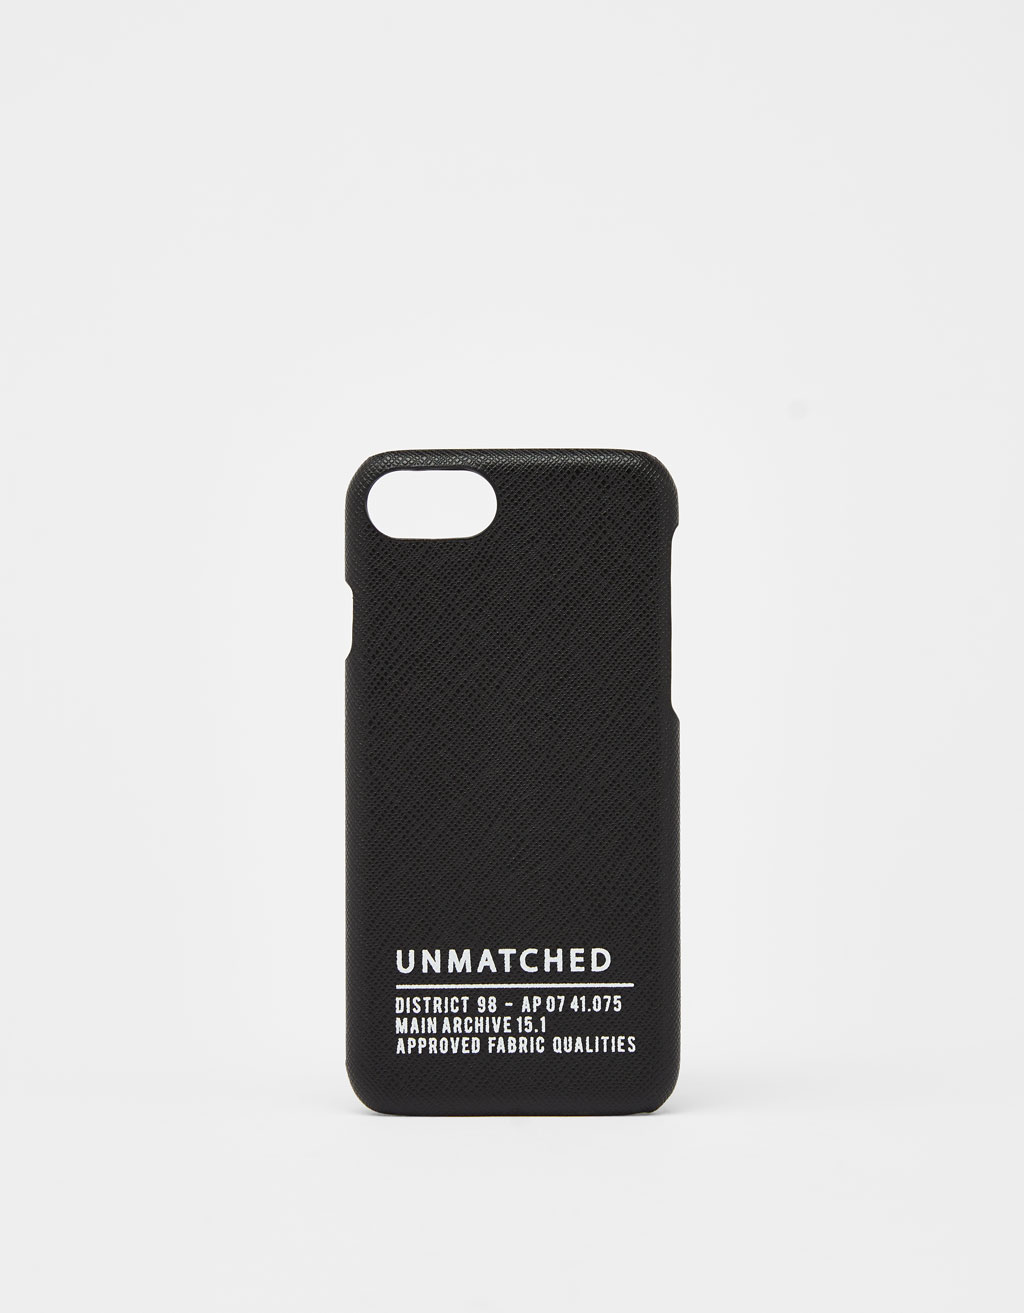 Carcassa Unmatched iPhone 6/6S/7/8